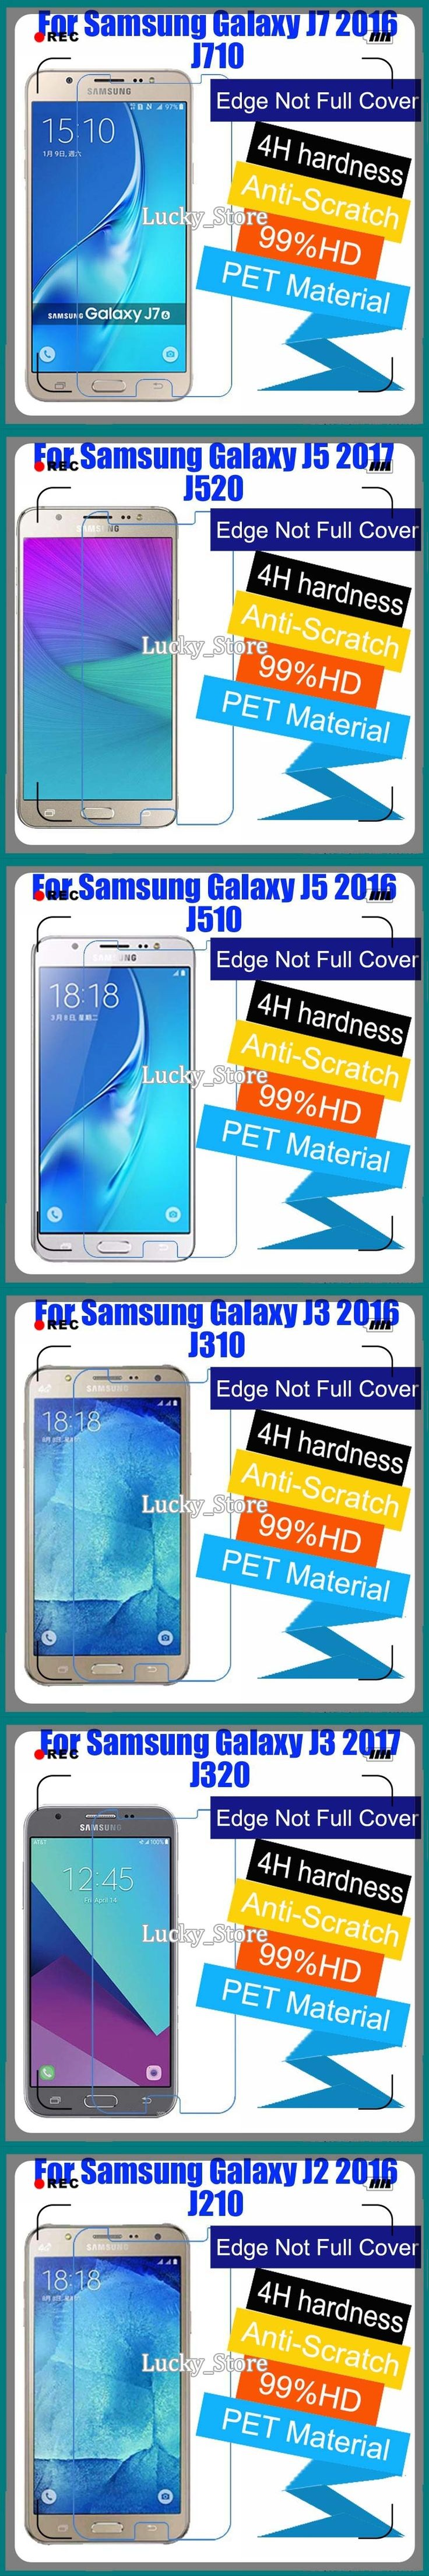 1pcs Matte High Clear Glossy Screen Protector Film For Samsung Galaxy J1 J2 J3 J5 J7 2016 J3 J5 J7 2017  Screen Protective Film